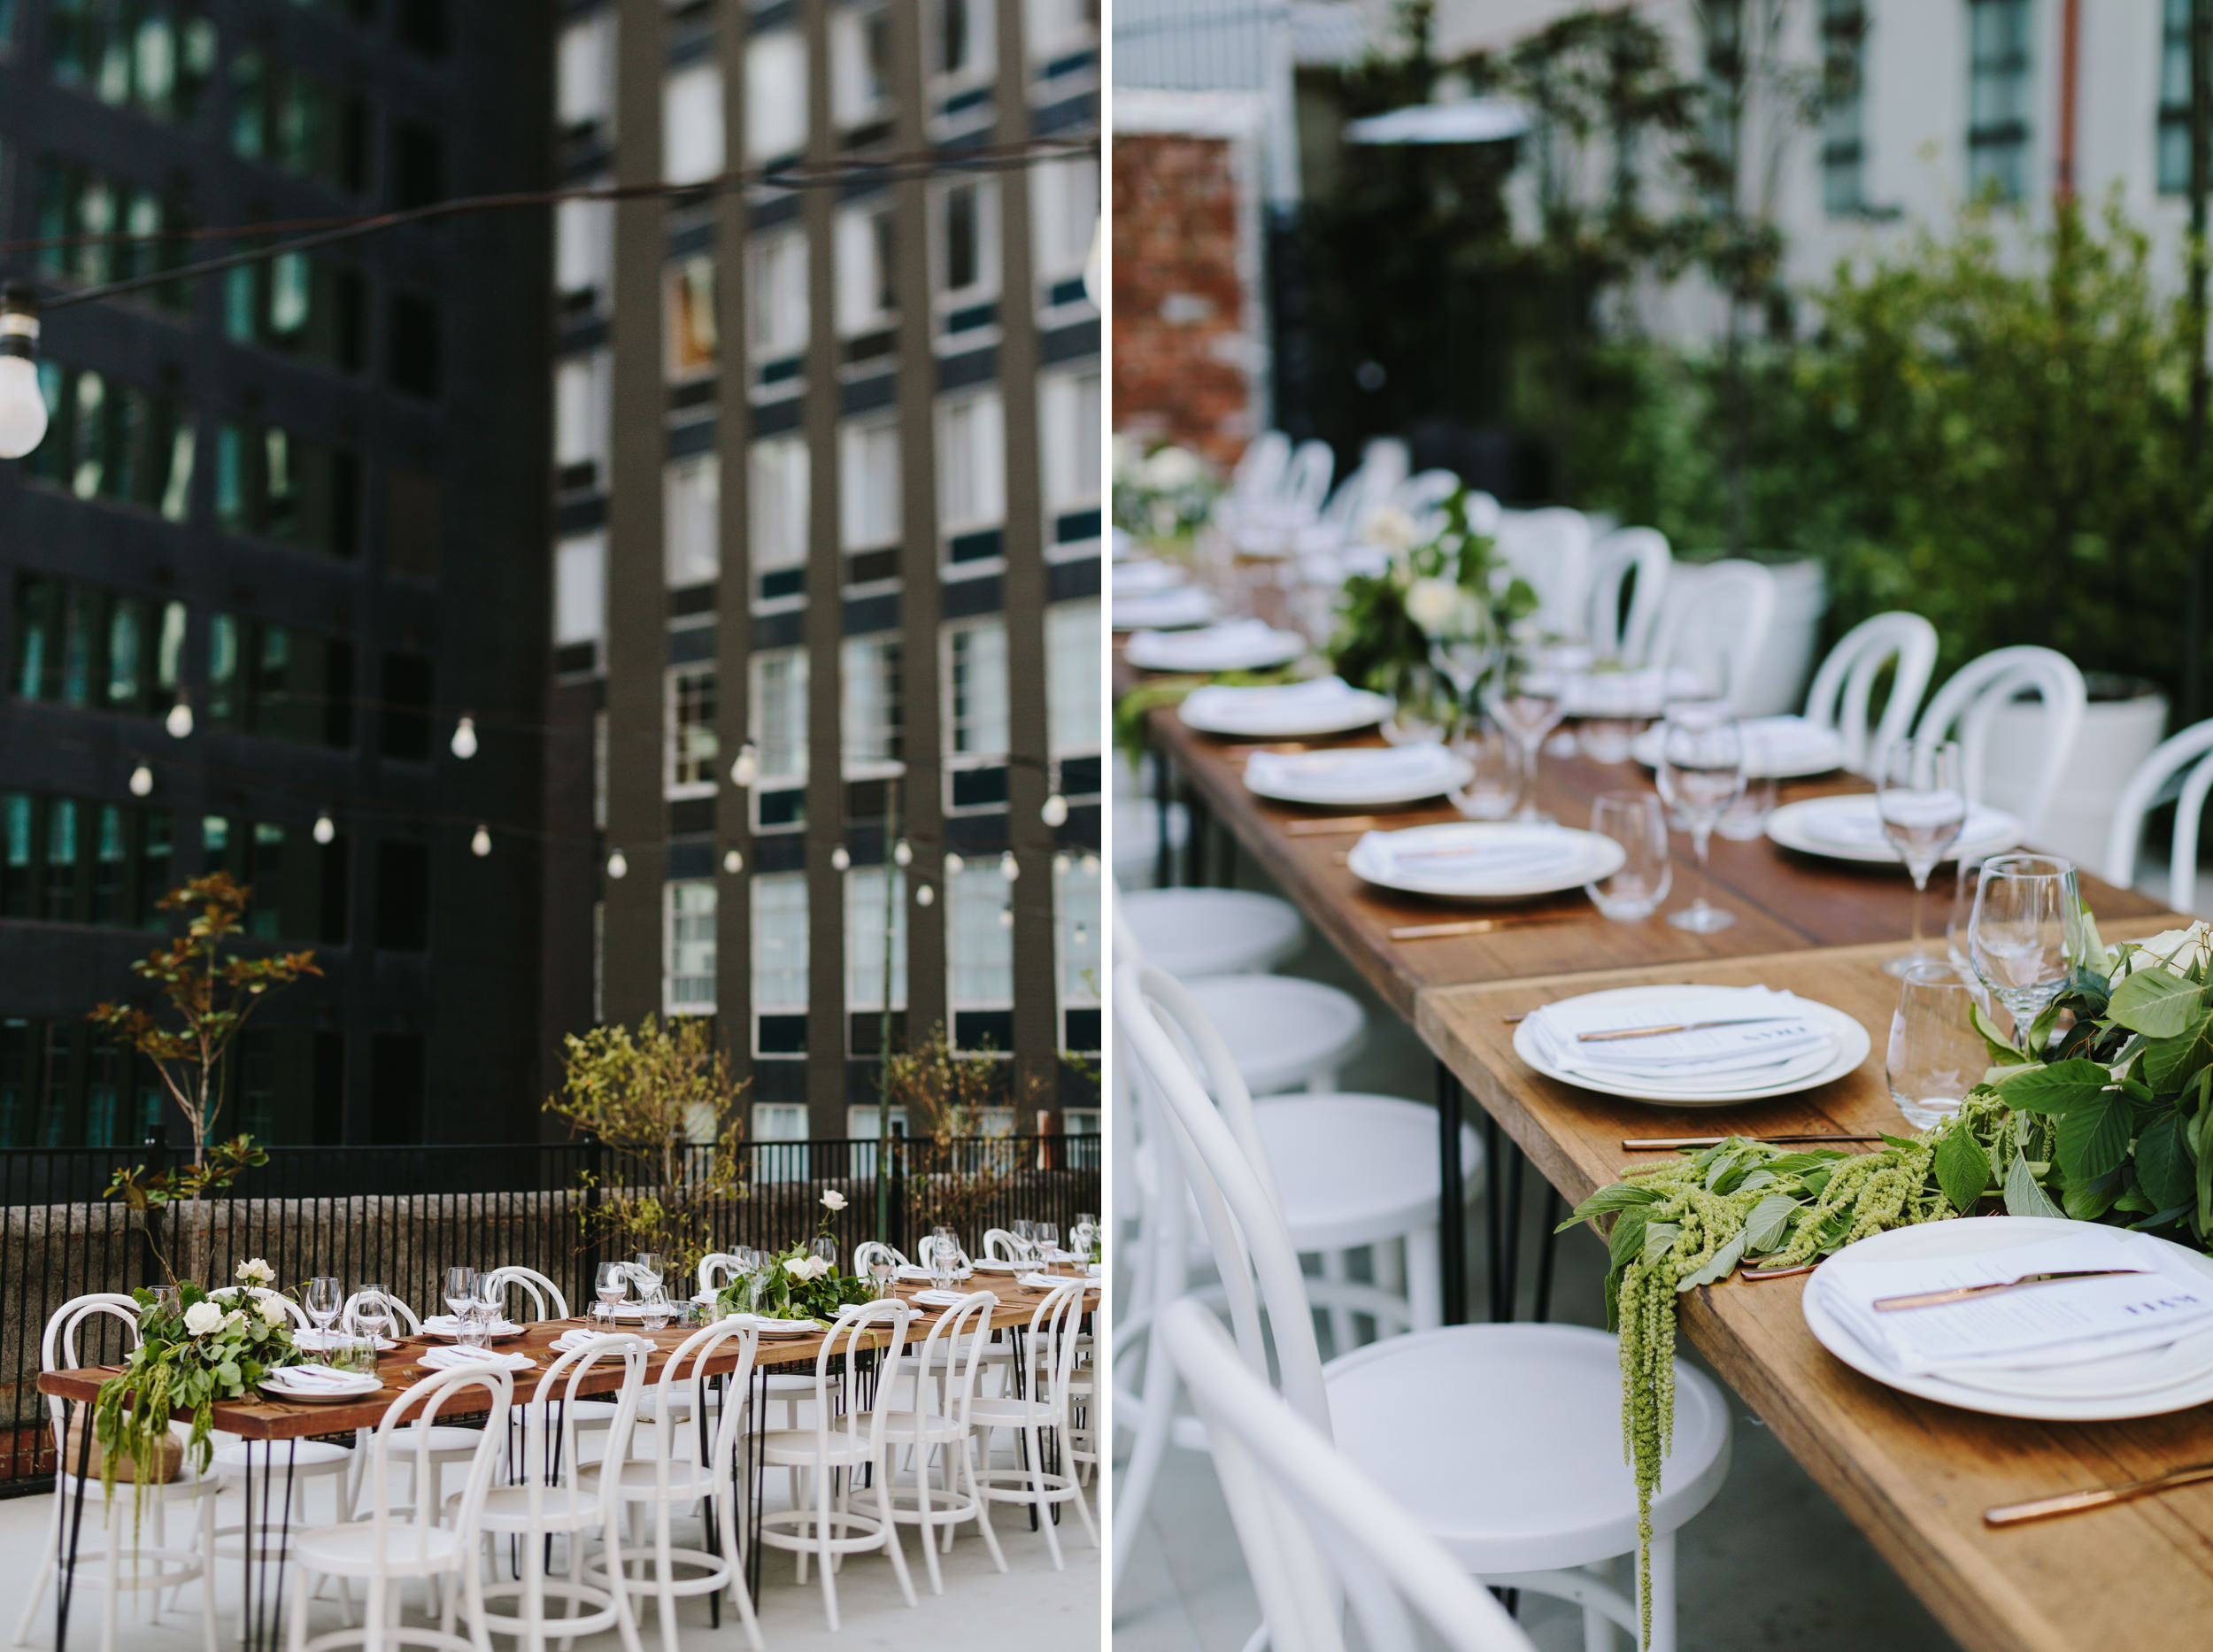 Melbourne_City_Rooftop_Wedding_Tyson_Brigette079.JPG